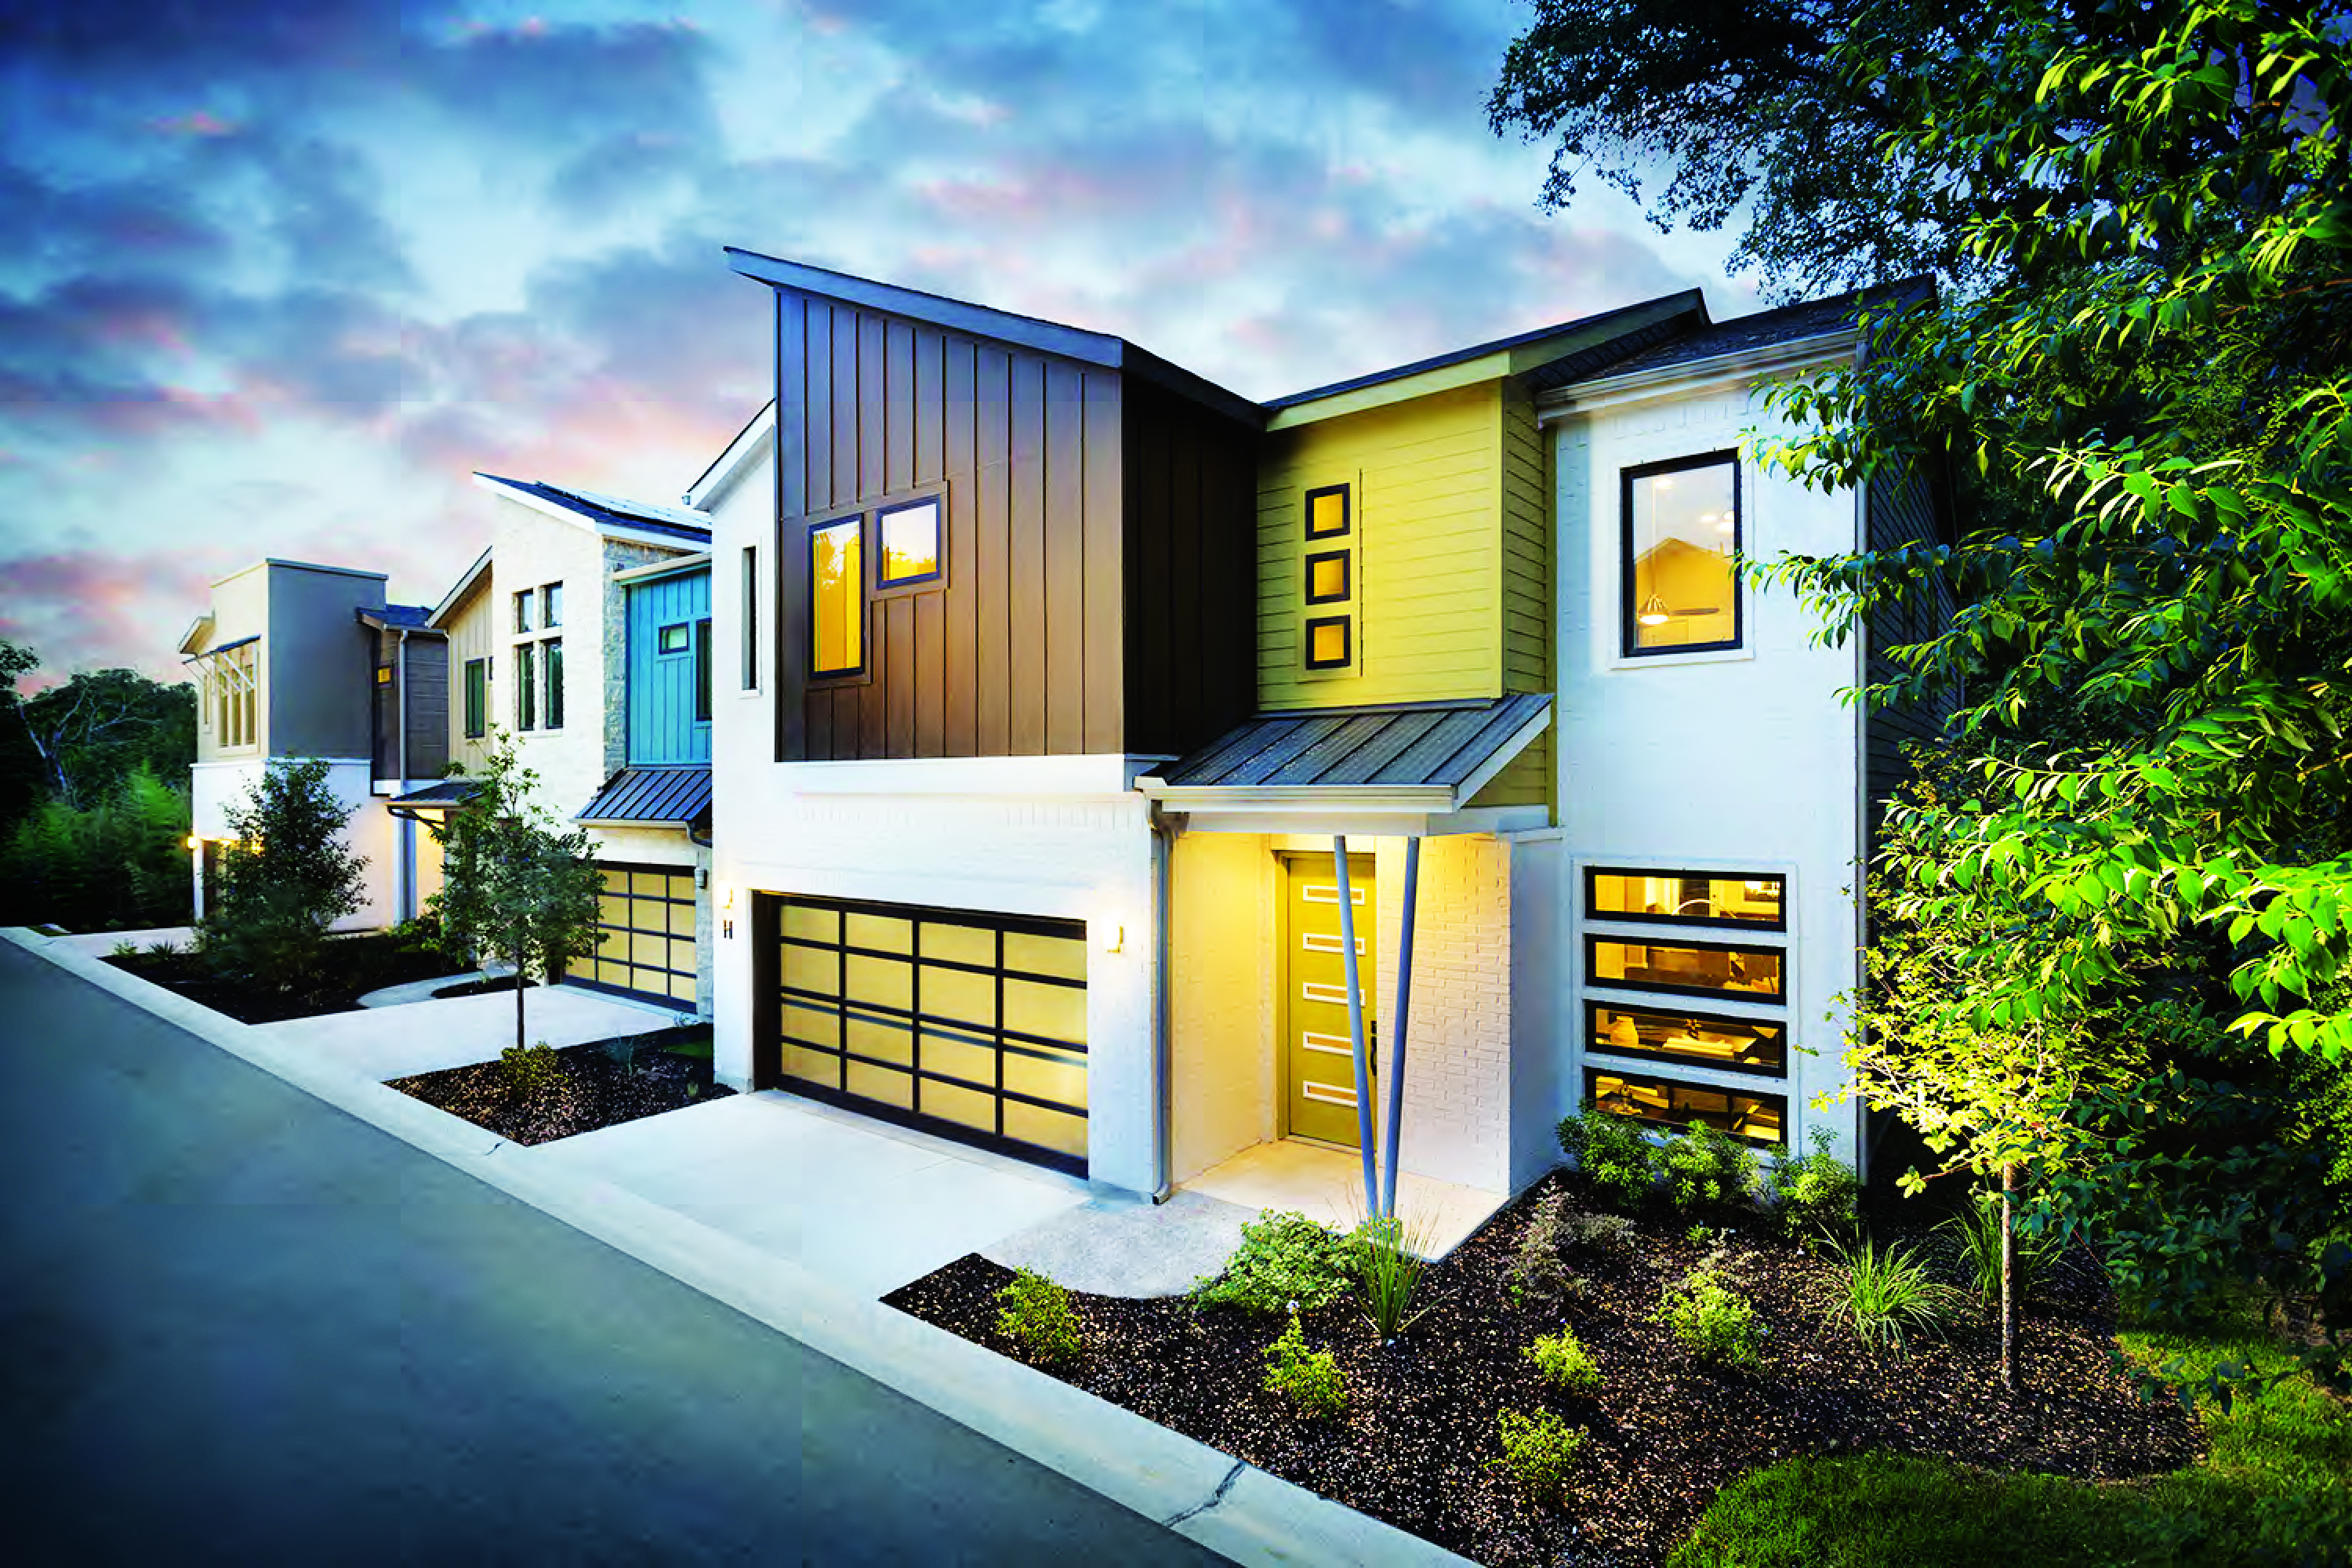 Captivating Home Buyers In Austin, Texas, Find Solaverau0027s Contemporary Designs  Refreshing. BSB Design Utilized A Variety Of Rooflines; Window Shapes And  Sizes; ...